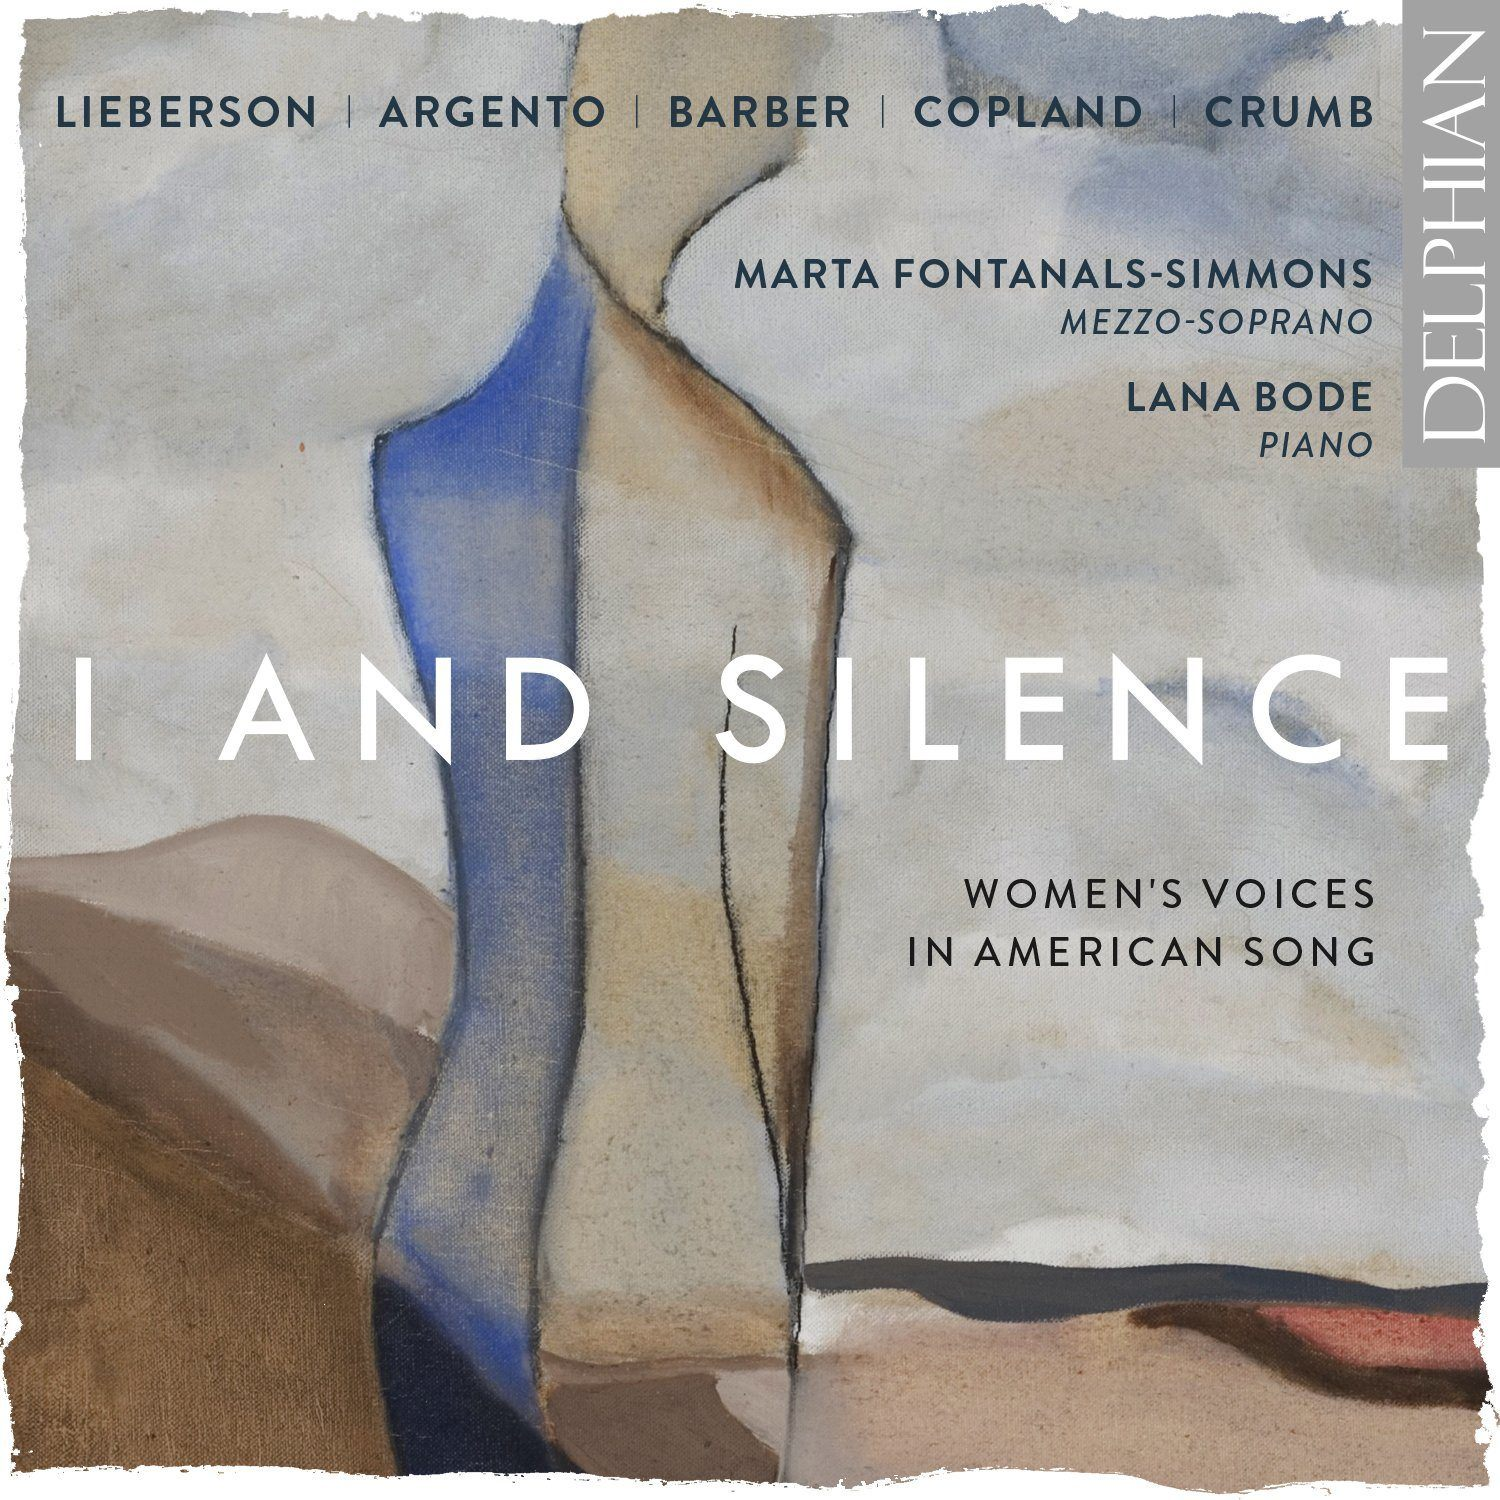 I and Silence: Women's Voices in American Song CD Delphian Records